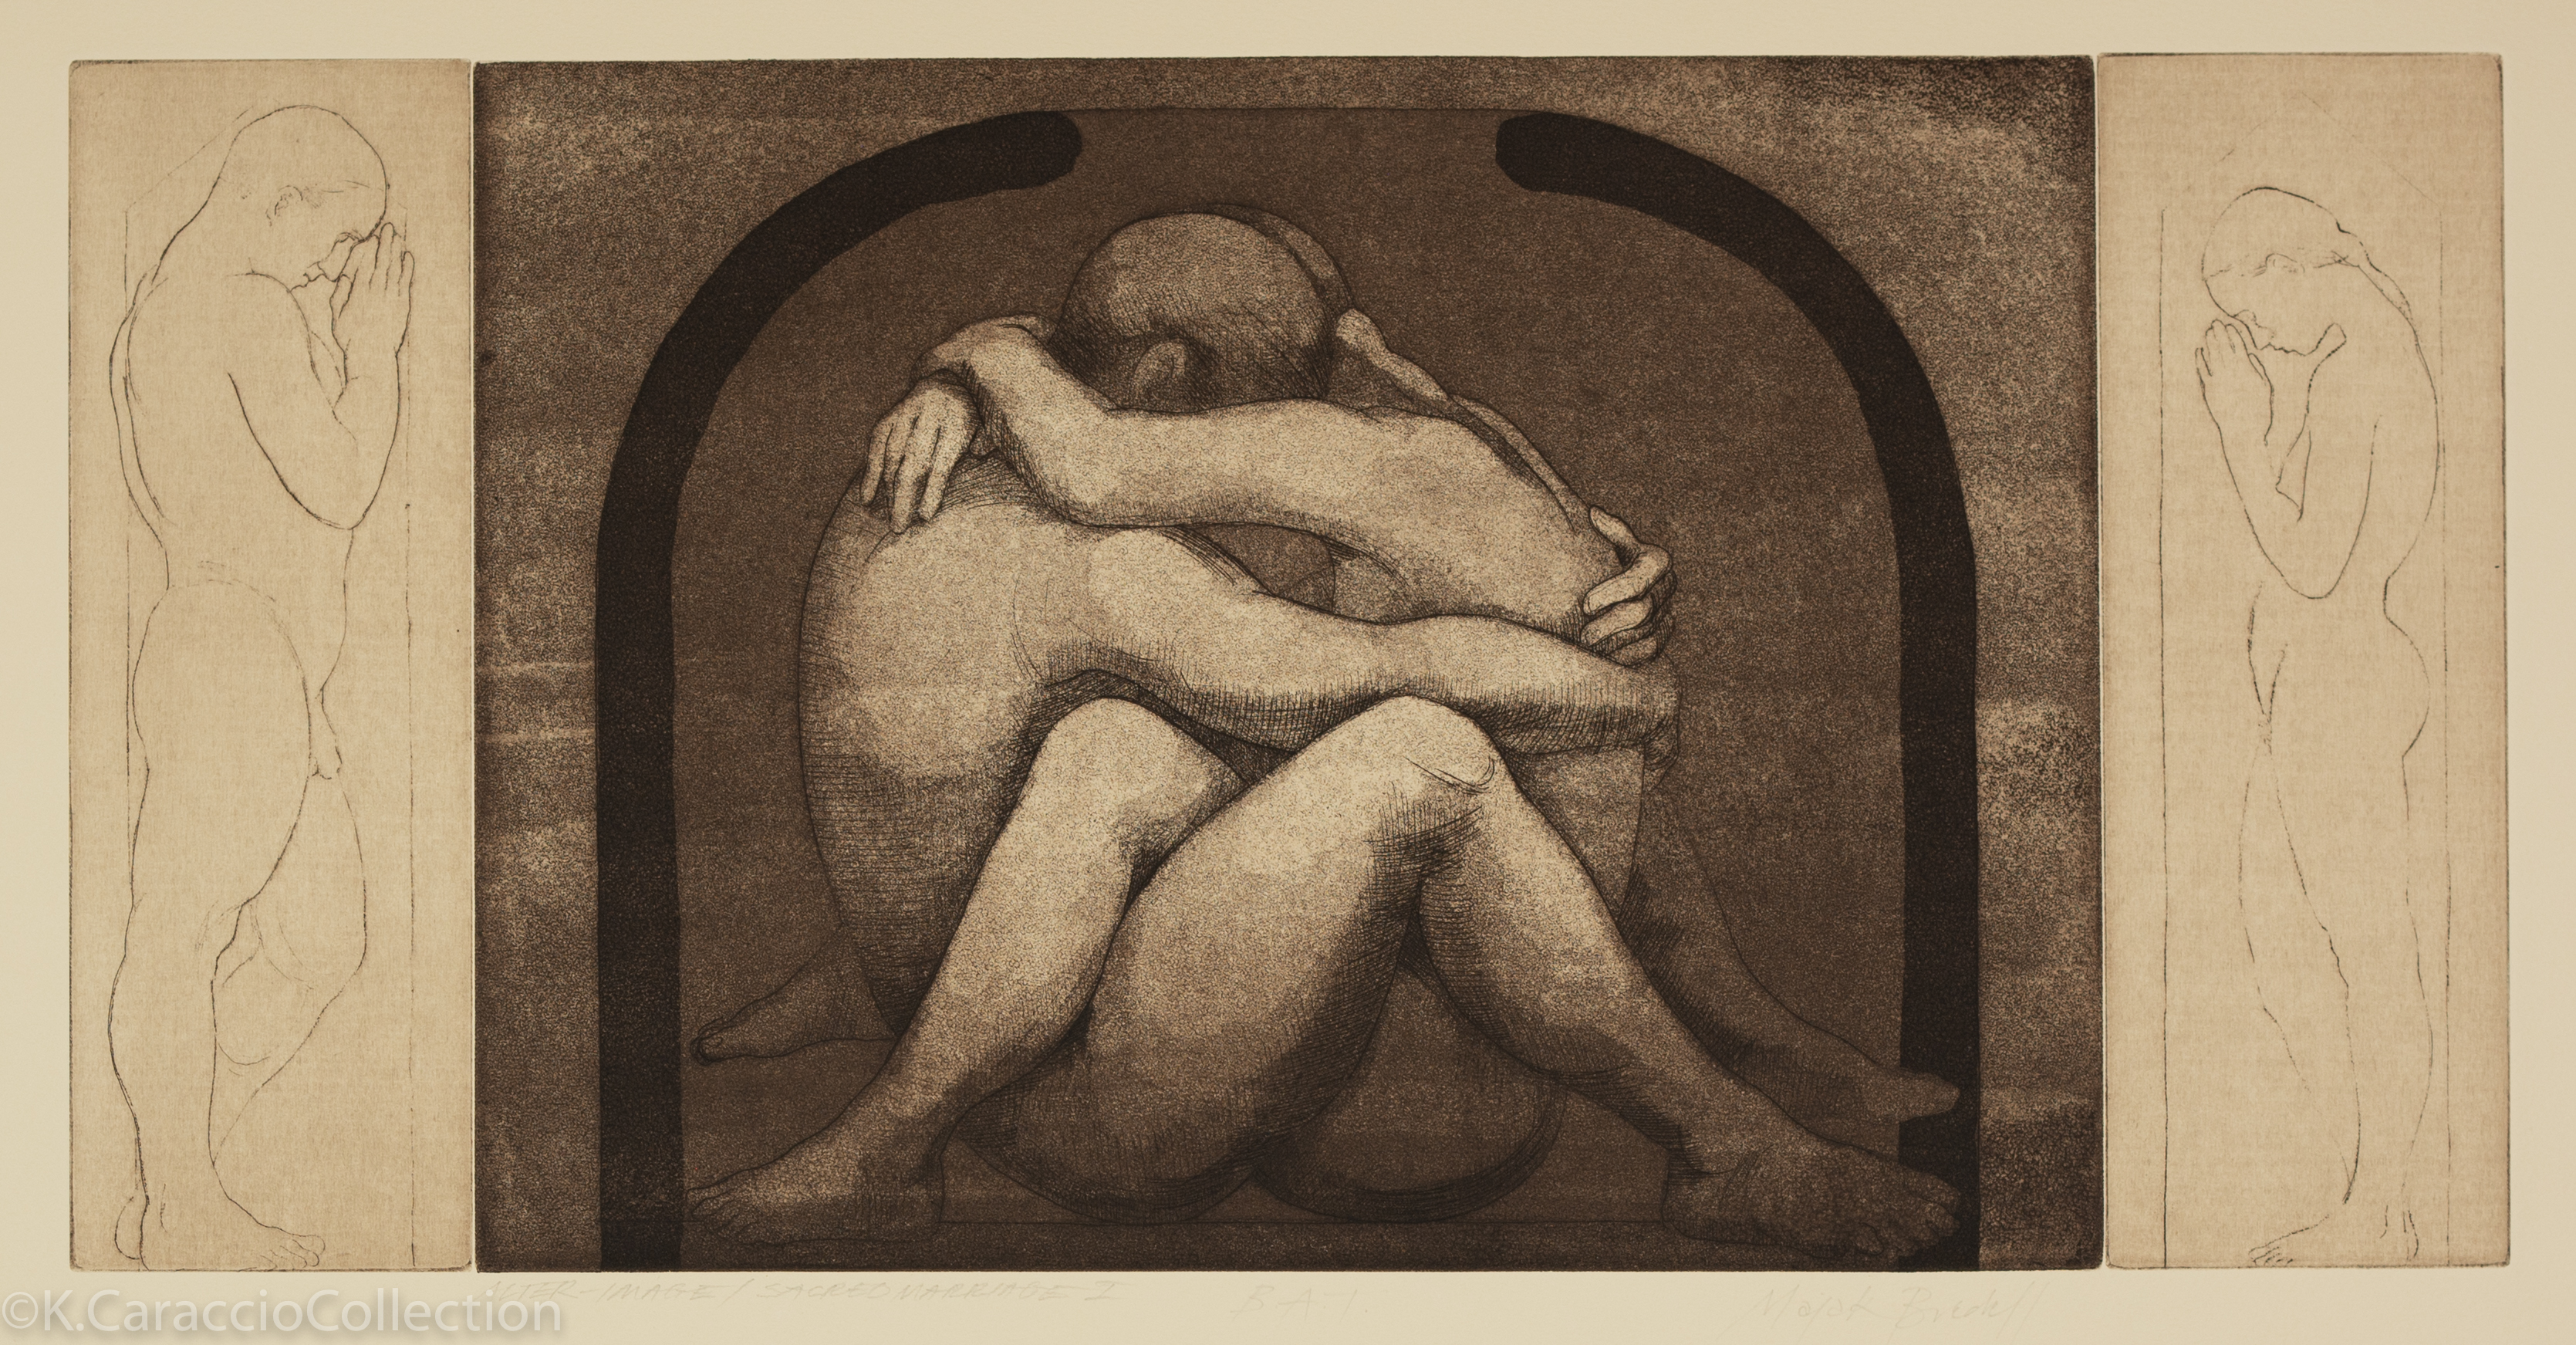 Alter-Image-Sacred Marriage I, 1998